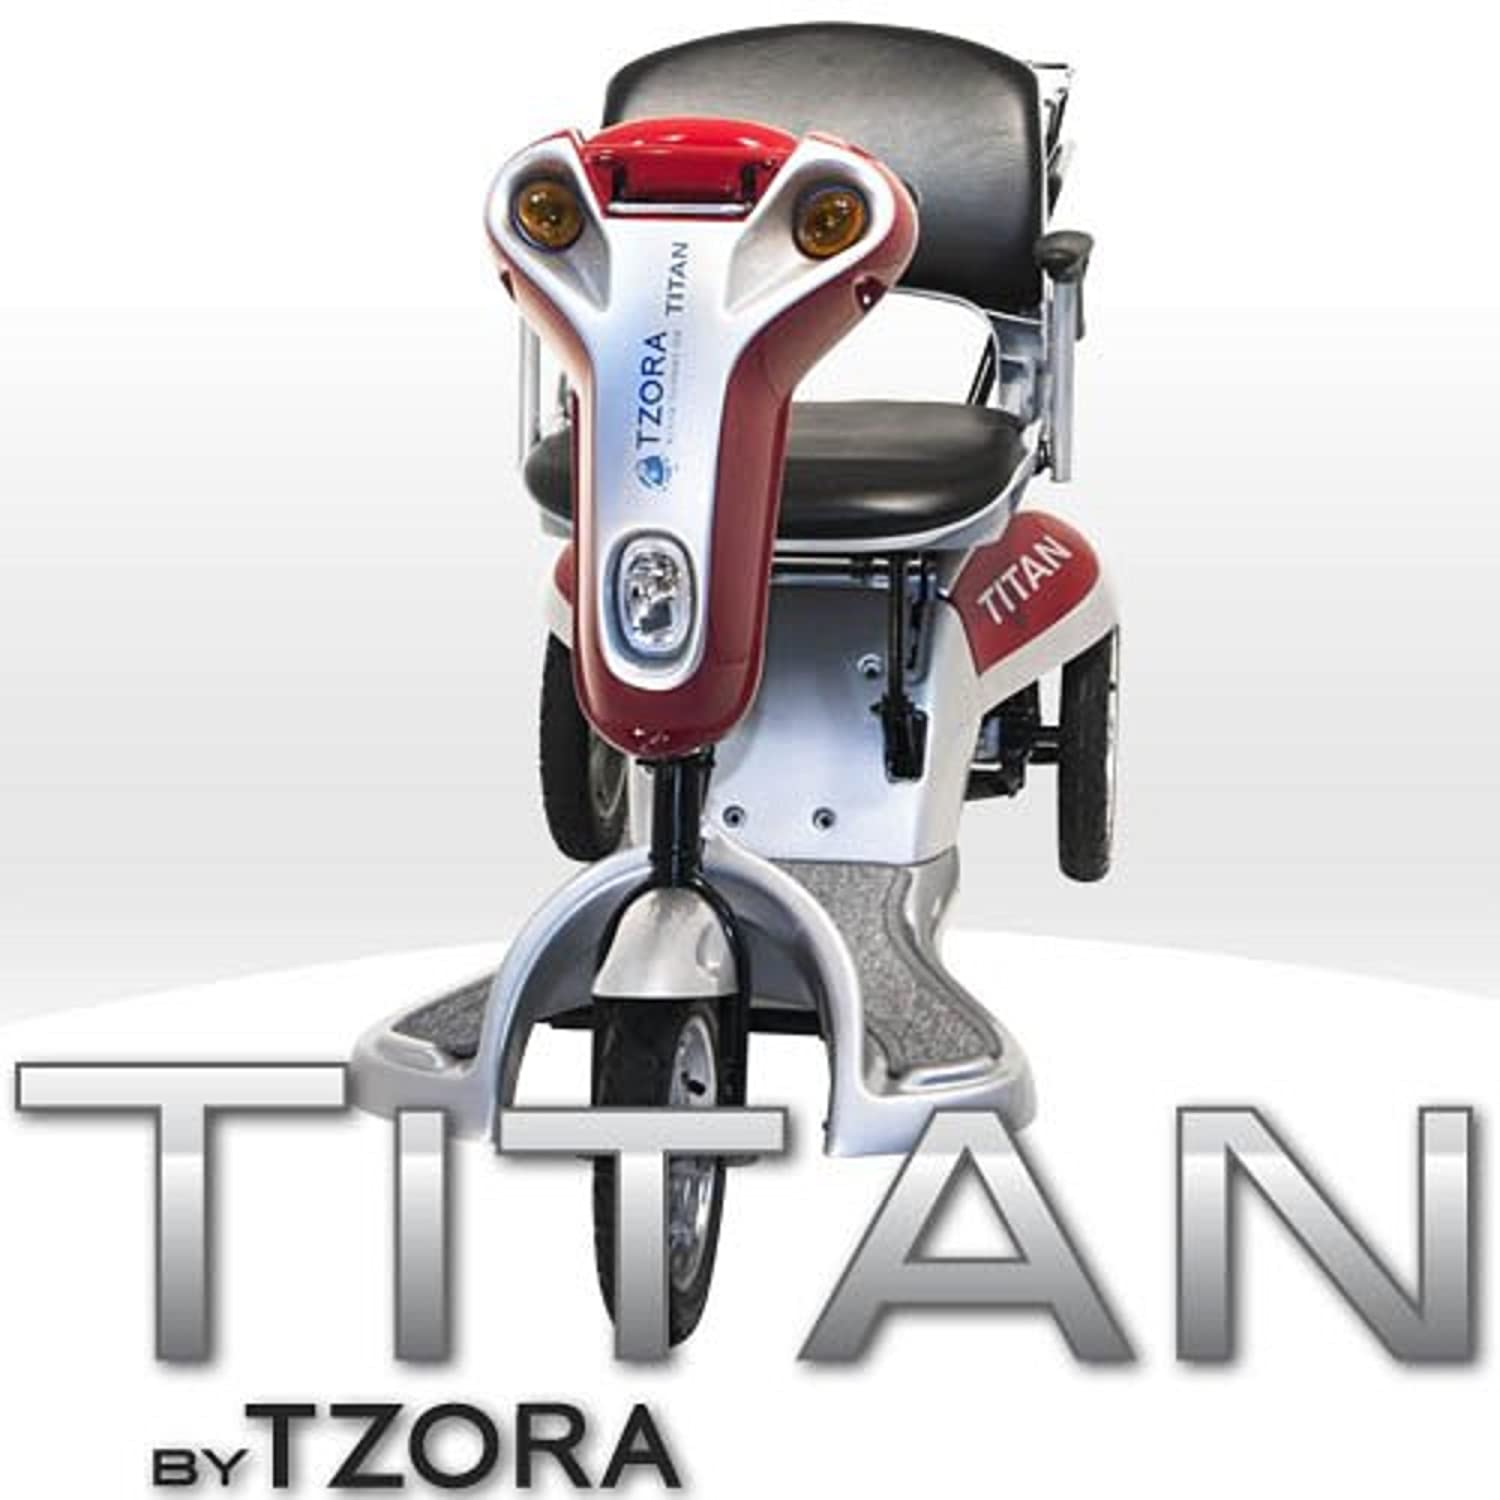 Amazon.com: Tzora – Titan – ligera, plegable – Patinete de 3 ...